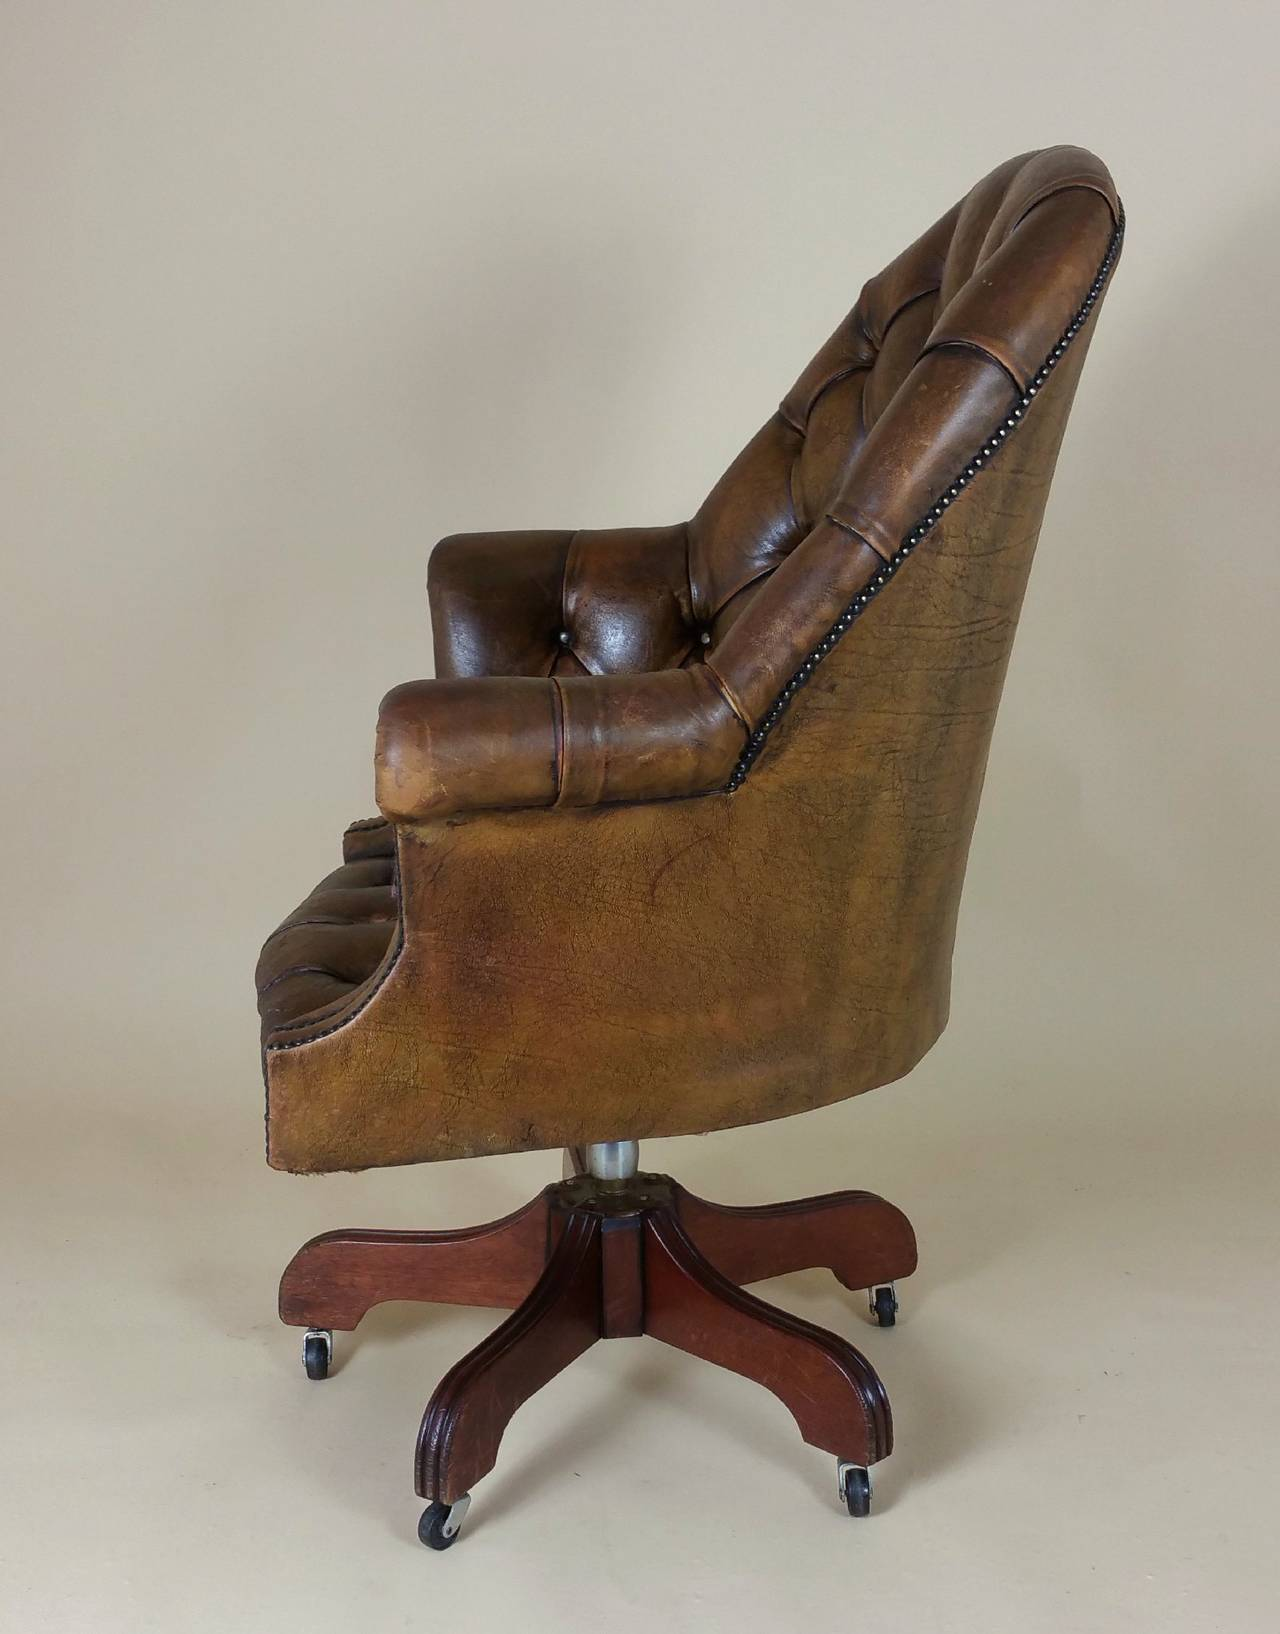 revolving chair colour folding lawn chairs with attached side table mid 20th c buttoned leather armchair at 1stdibs